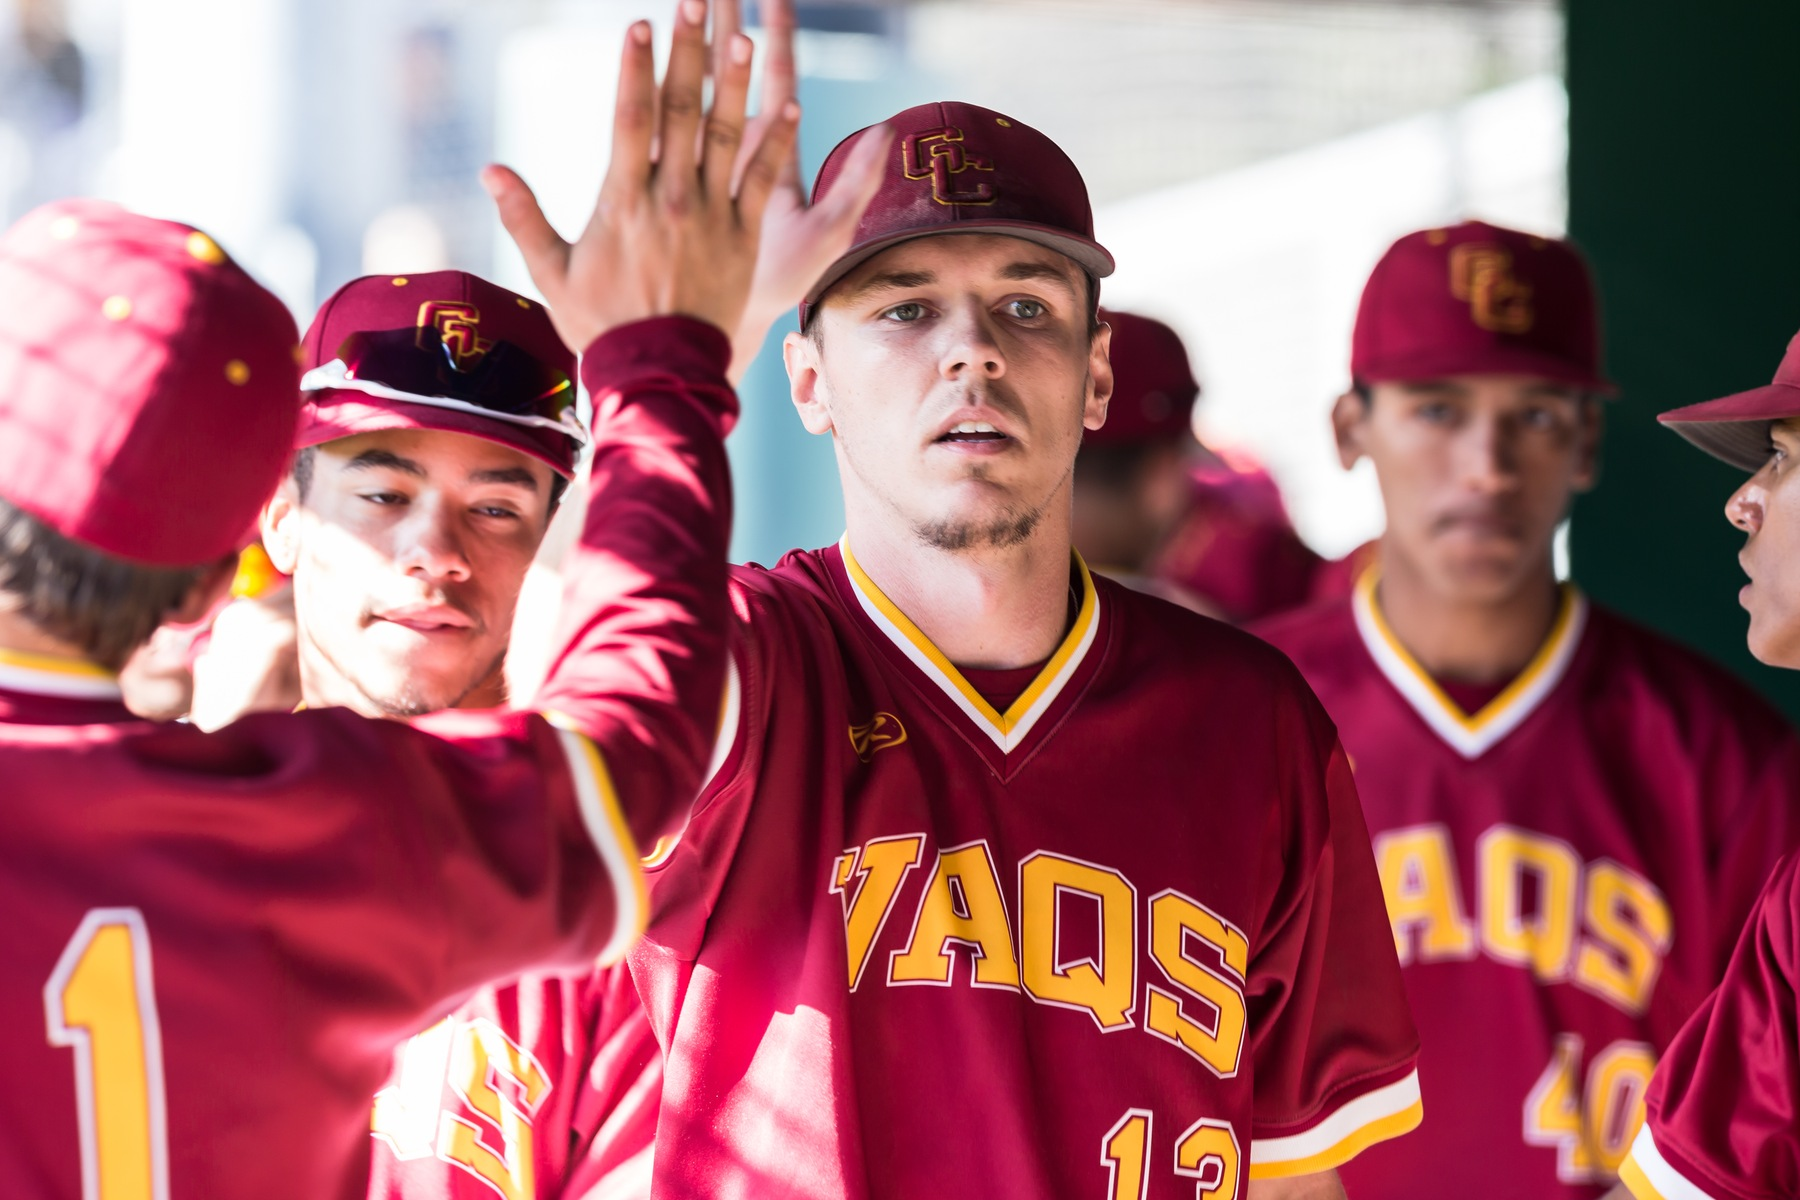 Chris Davidson pitches four hitter to help beat Canyons, 9-0